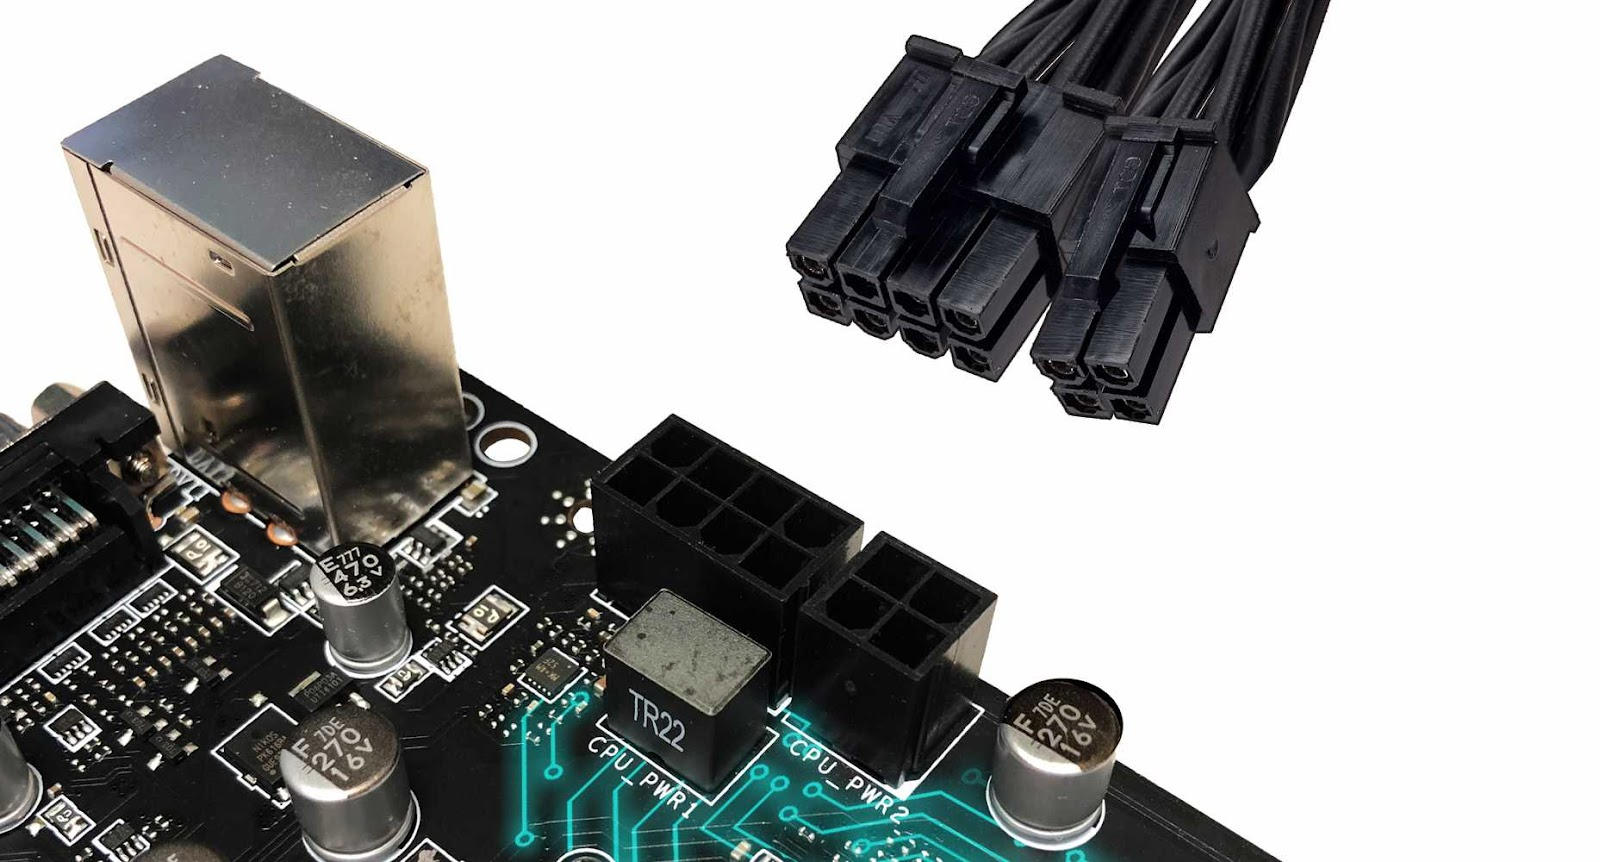 the connectors of the motherboard